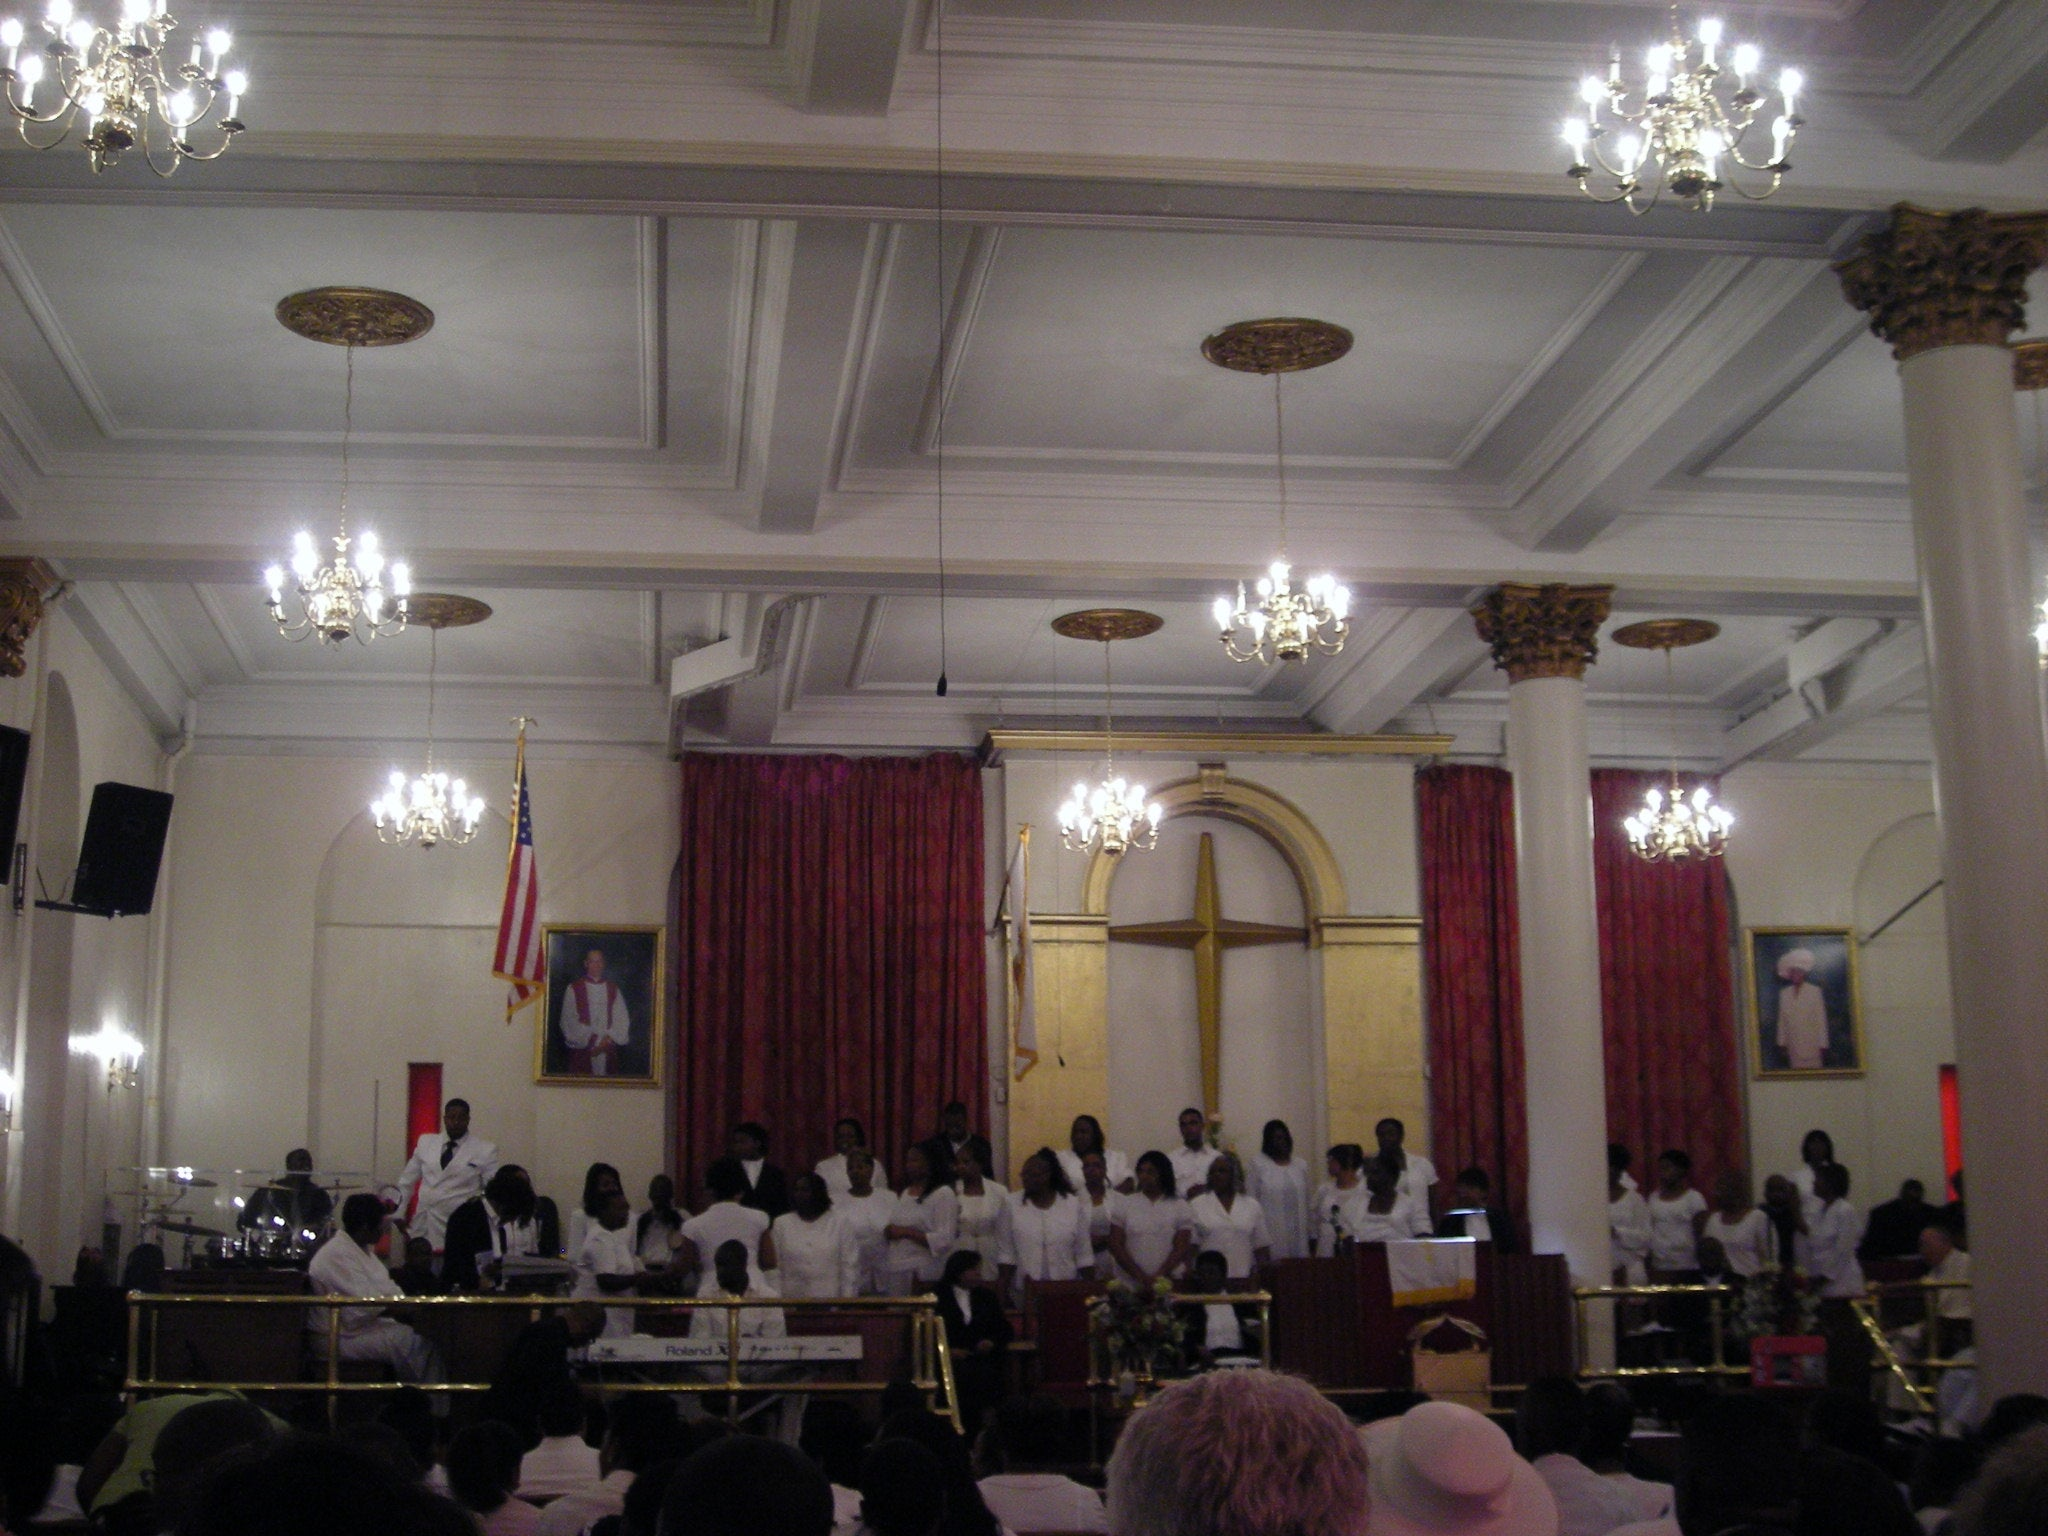 Banquete en Antioch Baptist Church